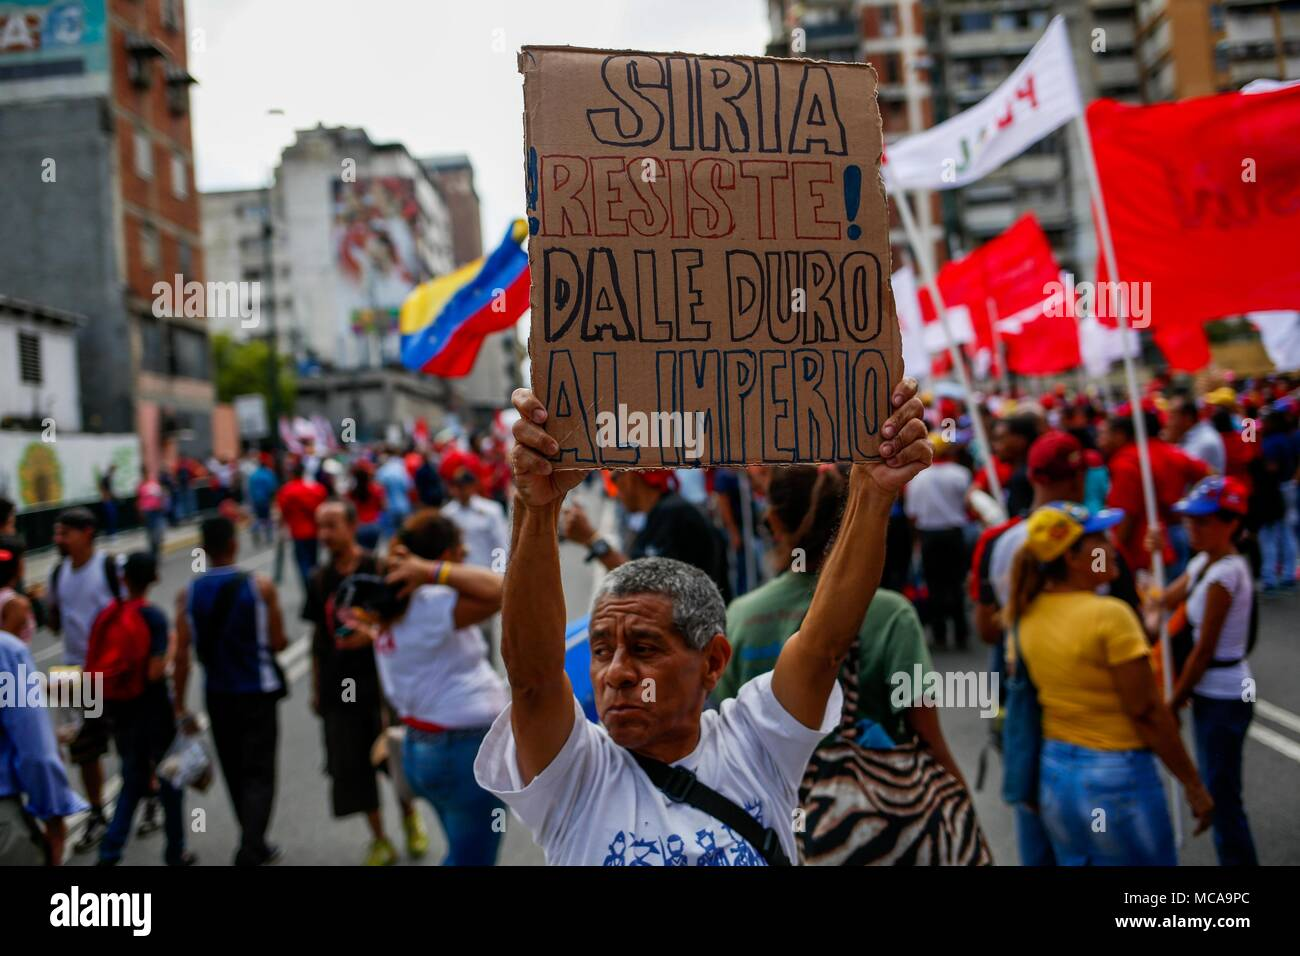 Caracas, Venezuela. 14th Apr, 2018. Supporters of Venezuelan President Nicolás Maduro participate in a political event in Caracas, Venezuela, on 14 April 2018. Maduro called for peace and respect for Syria after condemning the attack by the United States, France and the United Kingdom against that country, and urged the governments of the world to demonstrate 'against war' and 'armamentism'. Credit: Cristian Hernández/EFE/Alamy Live News - Stock Image